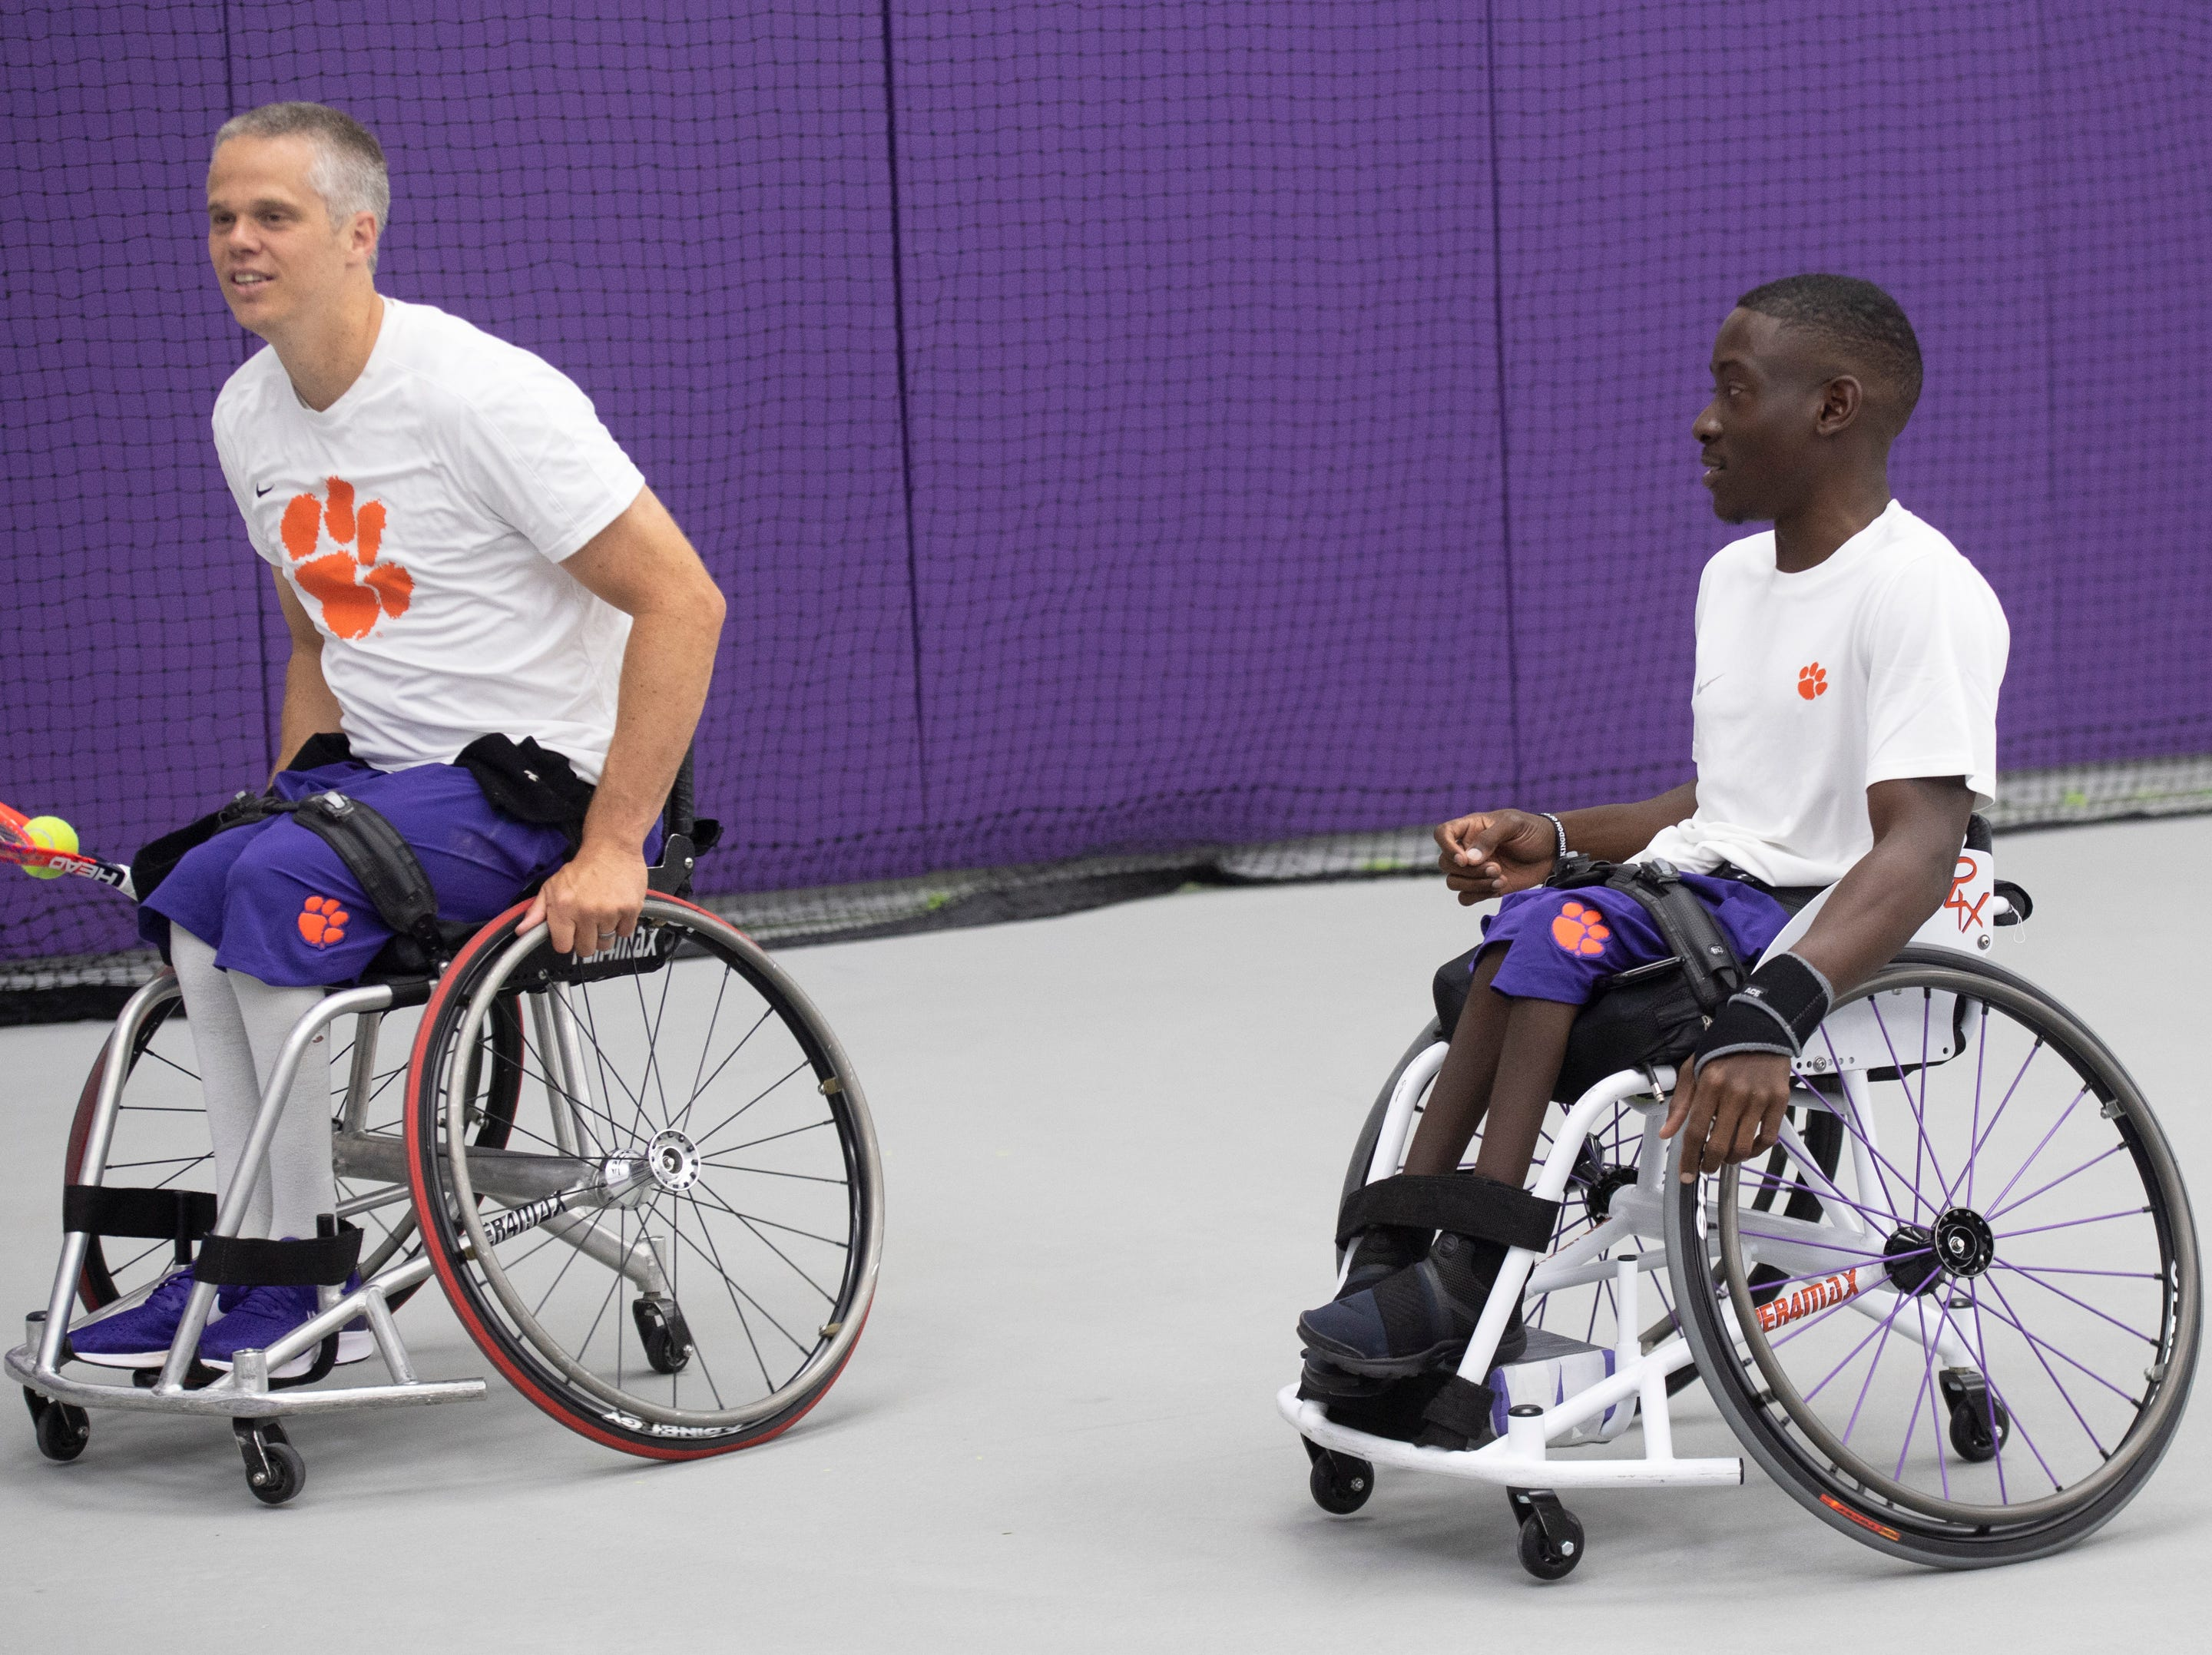 Jeff Townsend (left) and Marsden Miller warm up before tennis practice at Clemson University Friday, May 3, 2019.